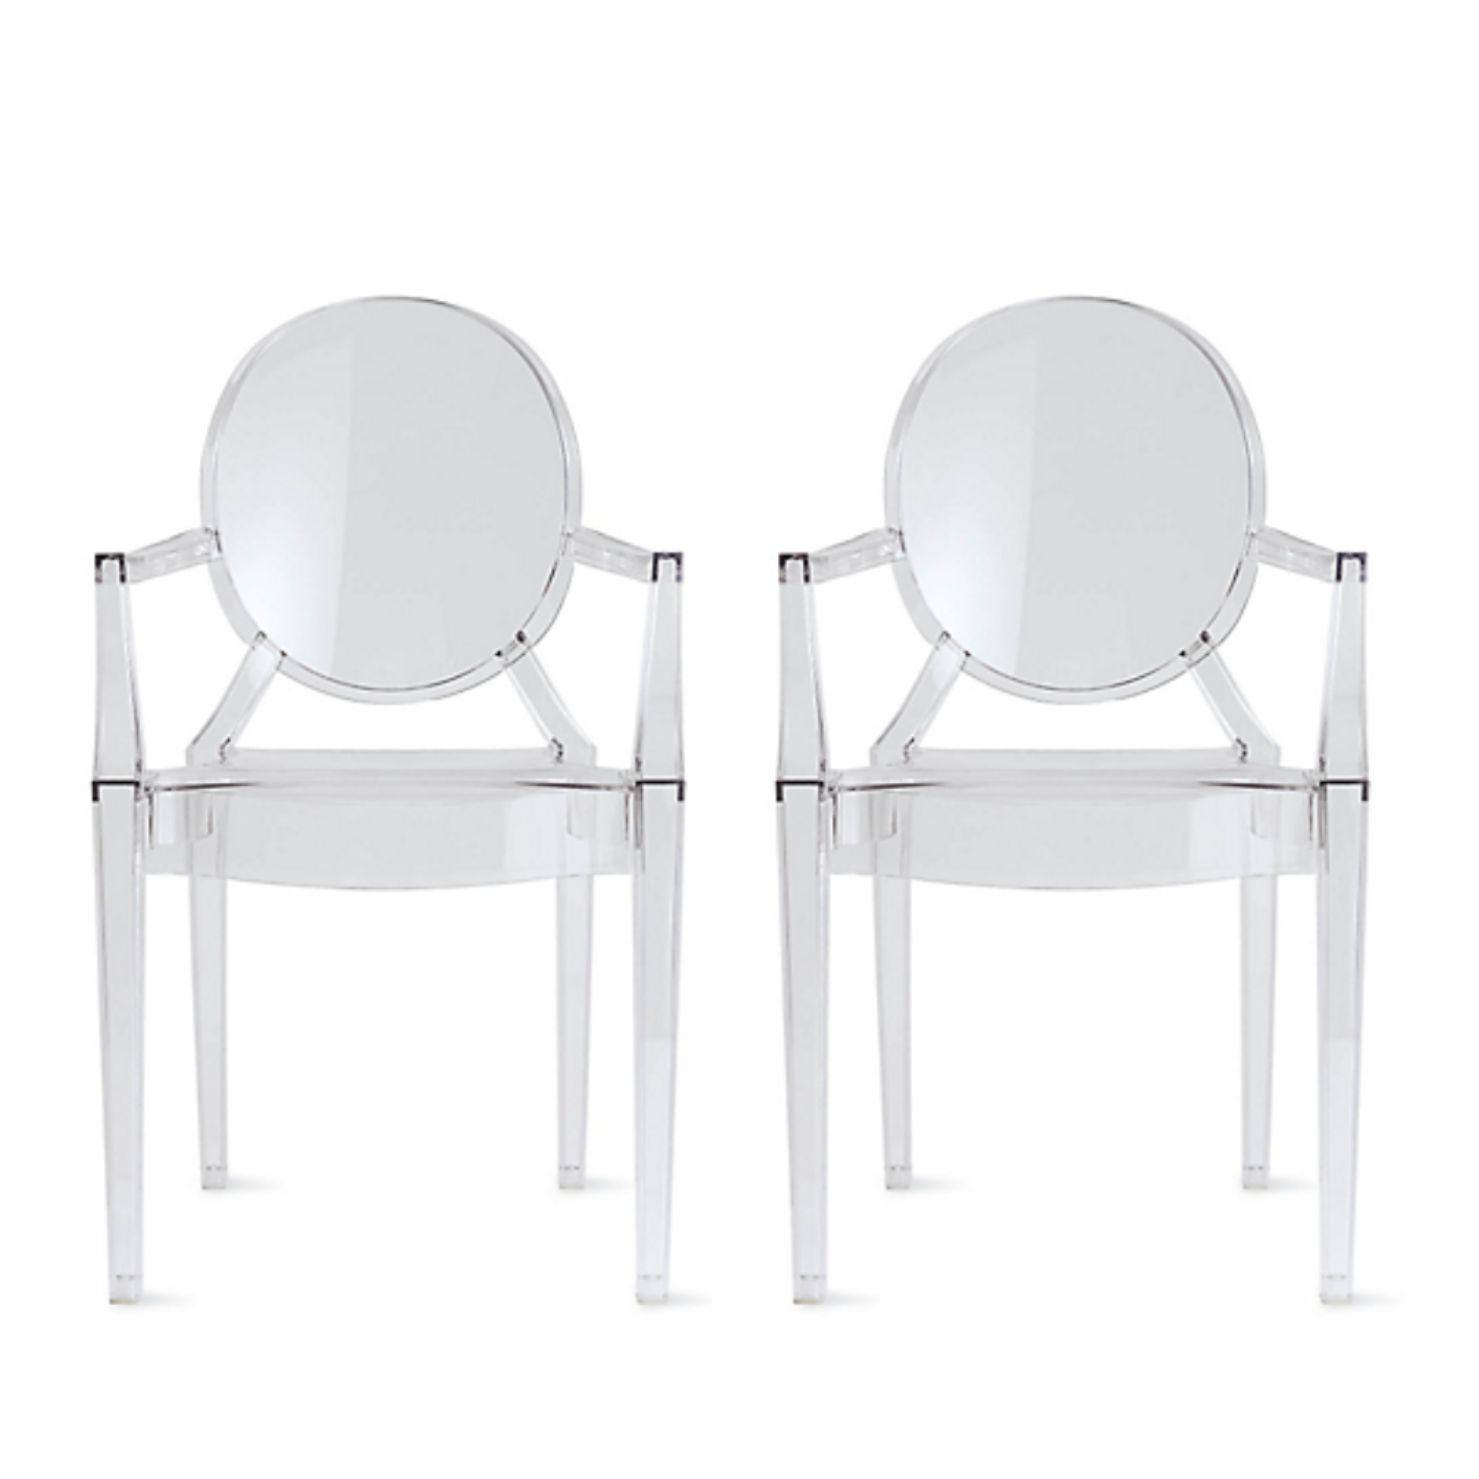 Stunning kartell louis ghost contemporary for Chaise louis ghost kartell